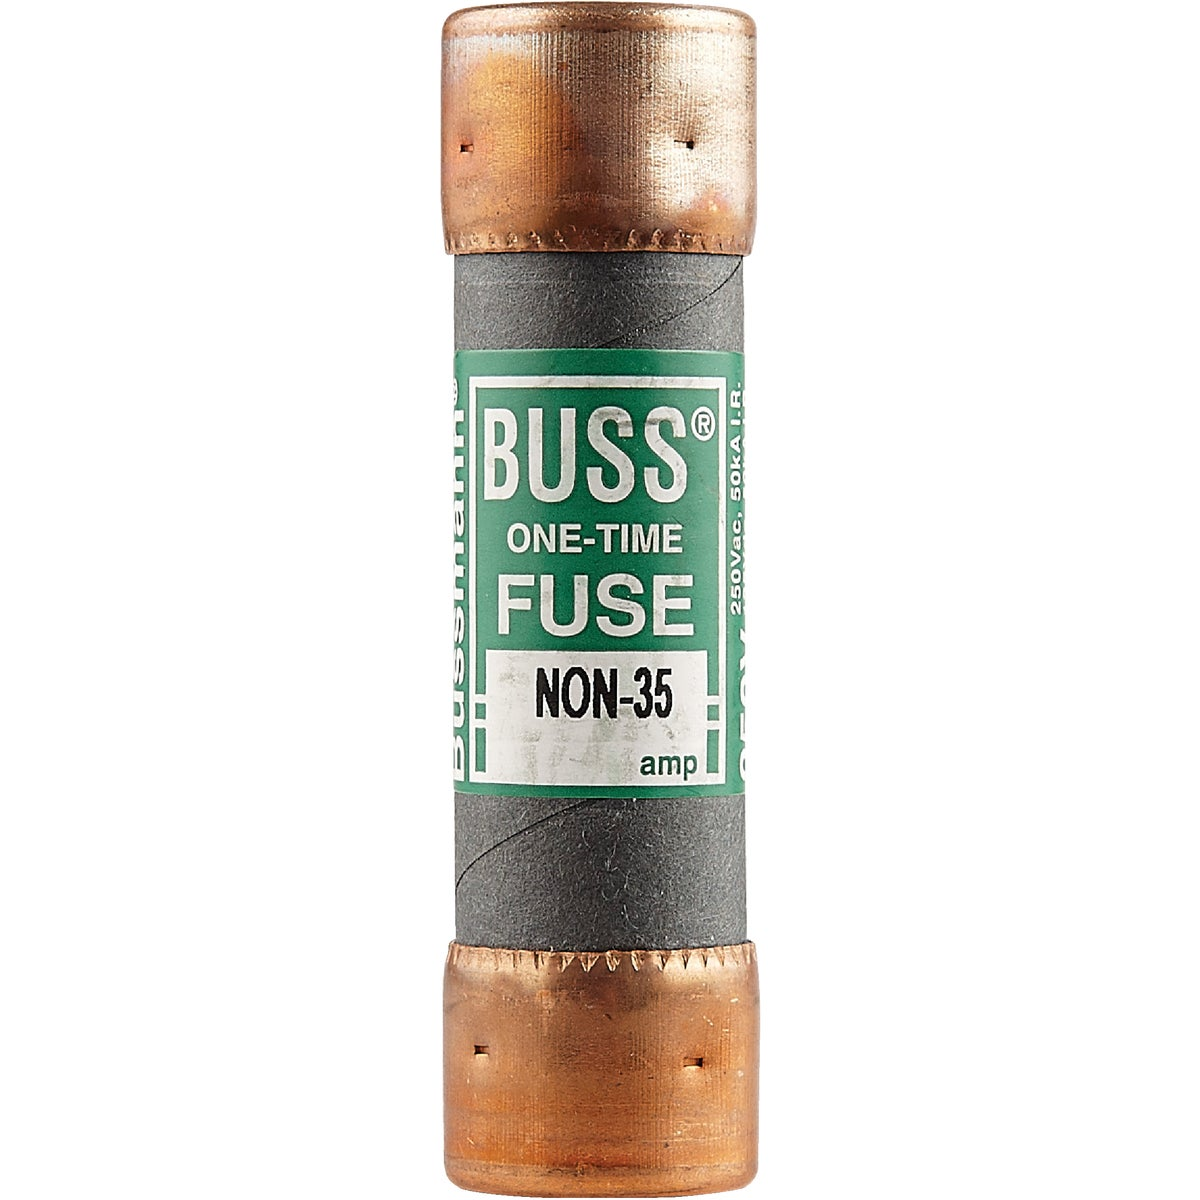 35A NON CARTRIDGE FUSE - NON-35 by Bussmann Cooper